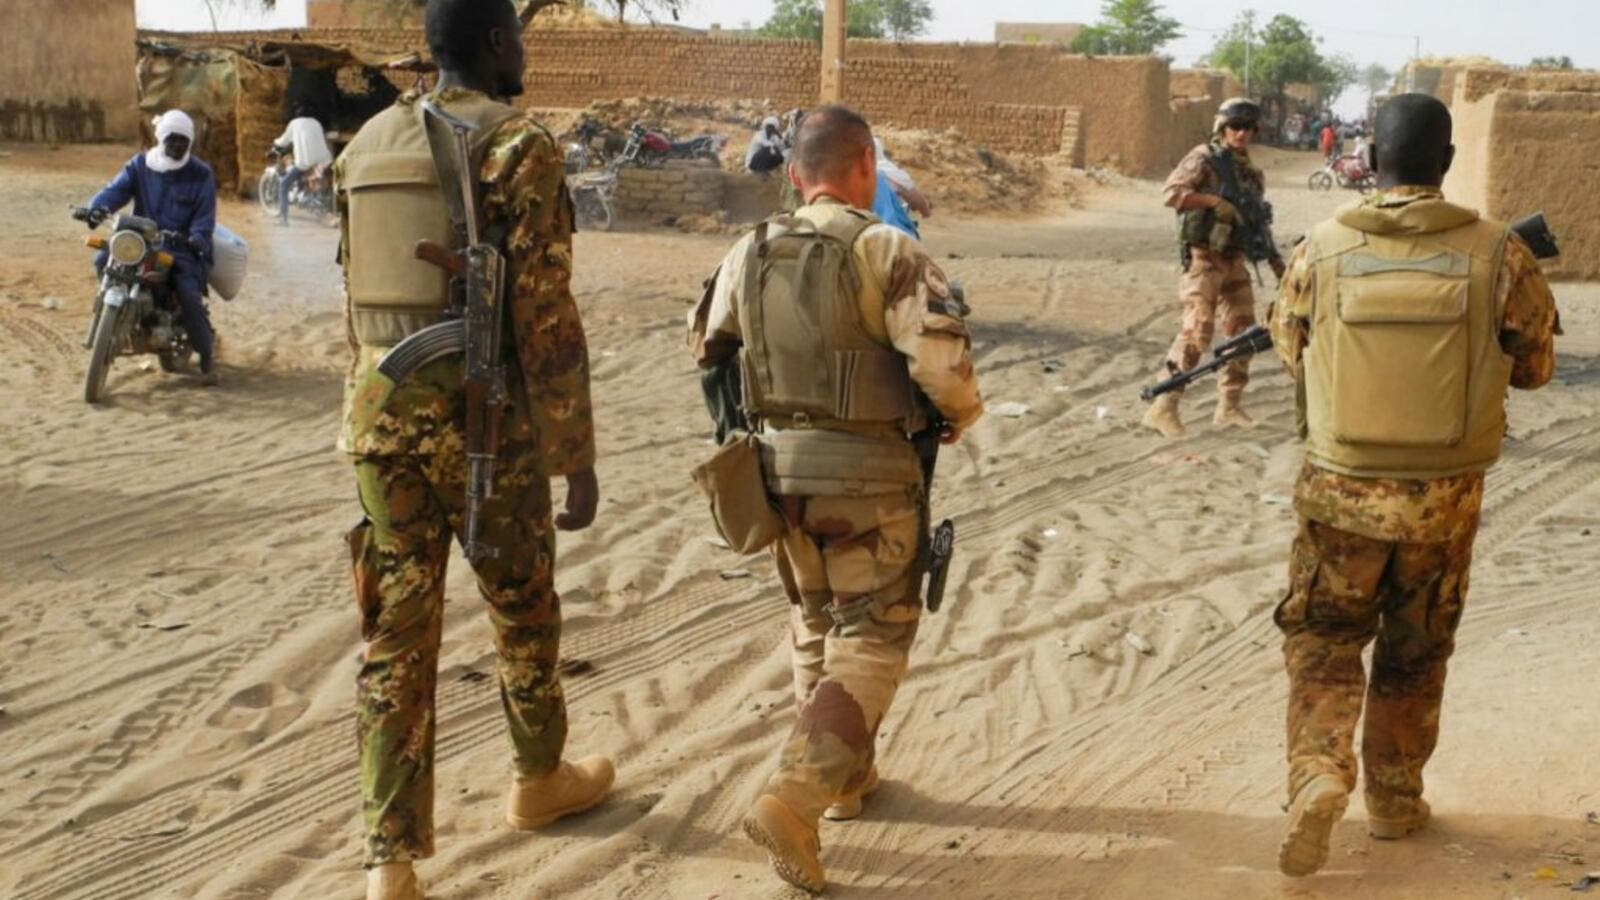 Soldiers from the Malian army patrol with soldiers from France's Barkhane Force in a street of Menaka. (AFP/ File Photo)